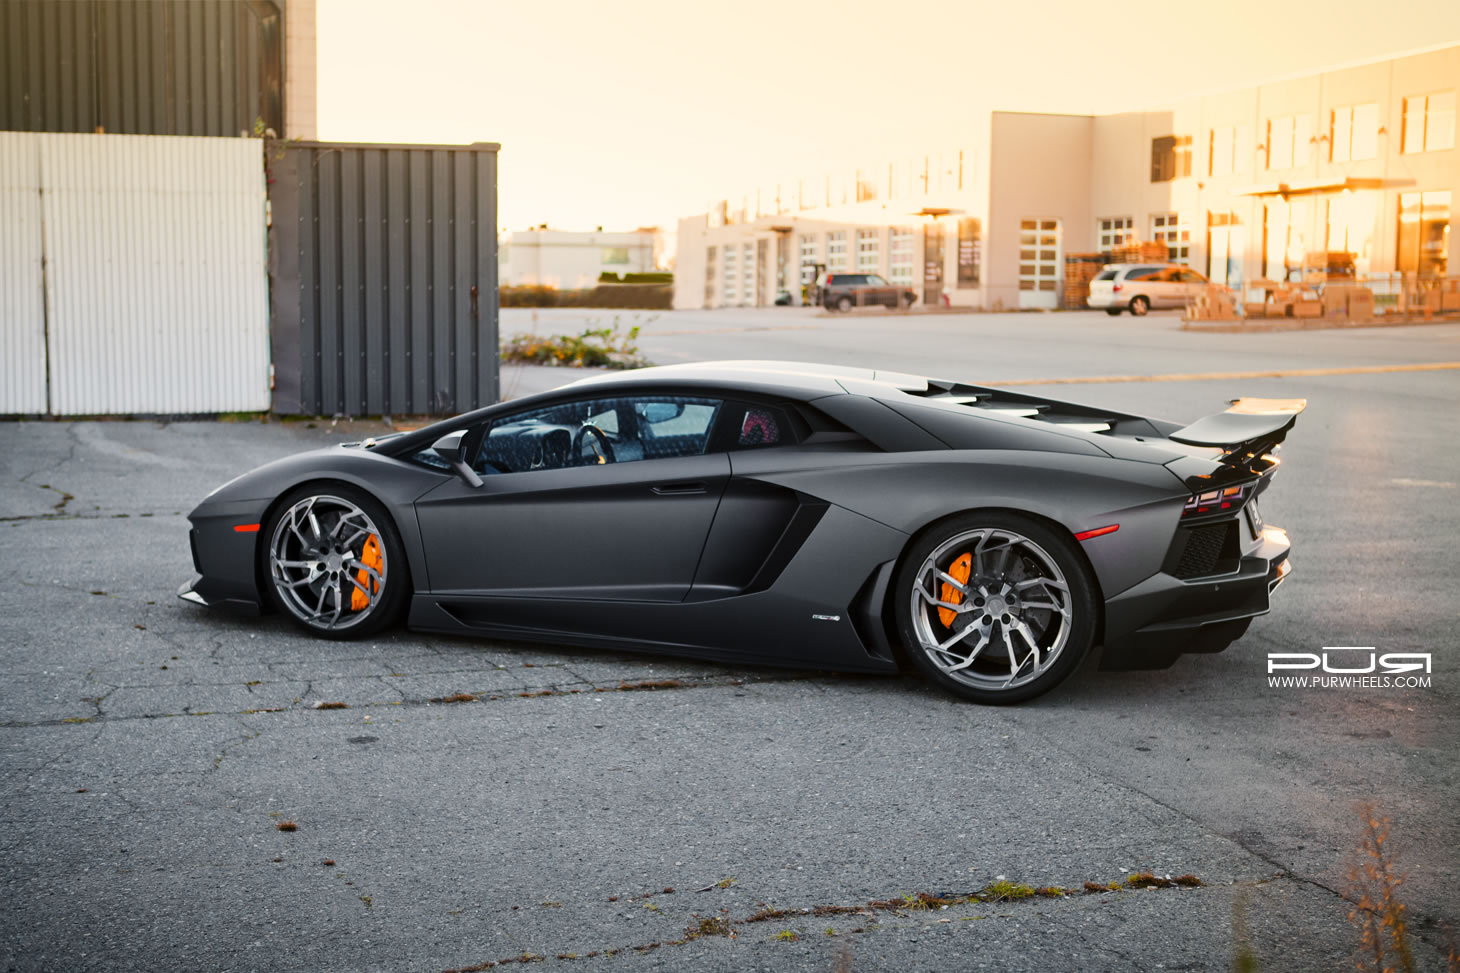 2013 Lamborghini Aventador Lp 700 4 By Pur Rear Photo